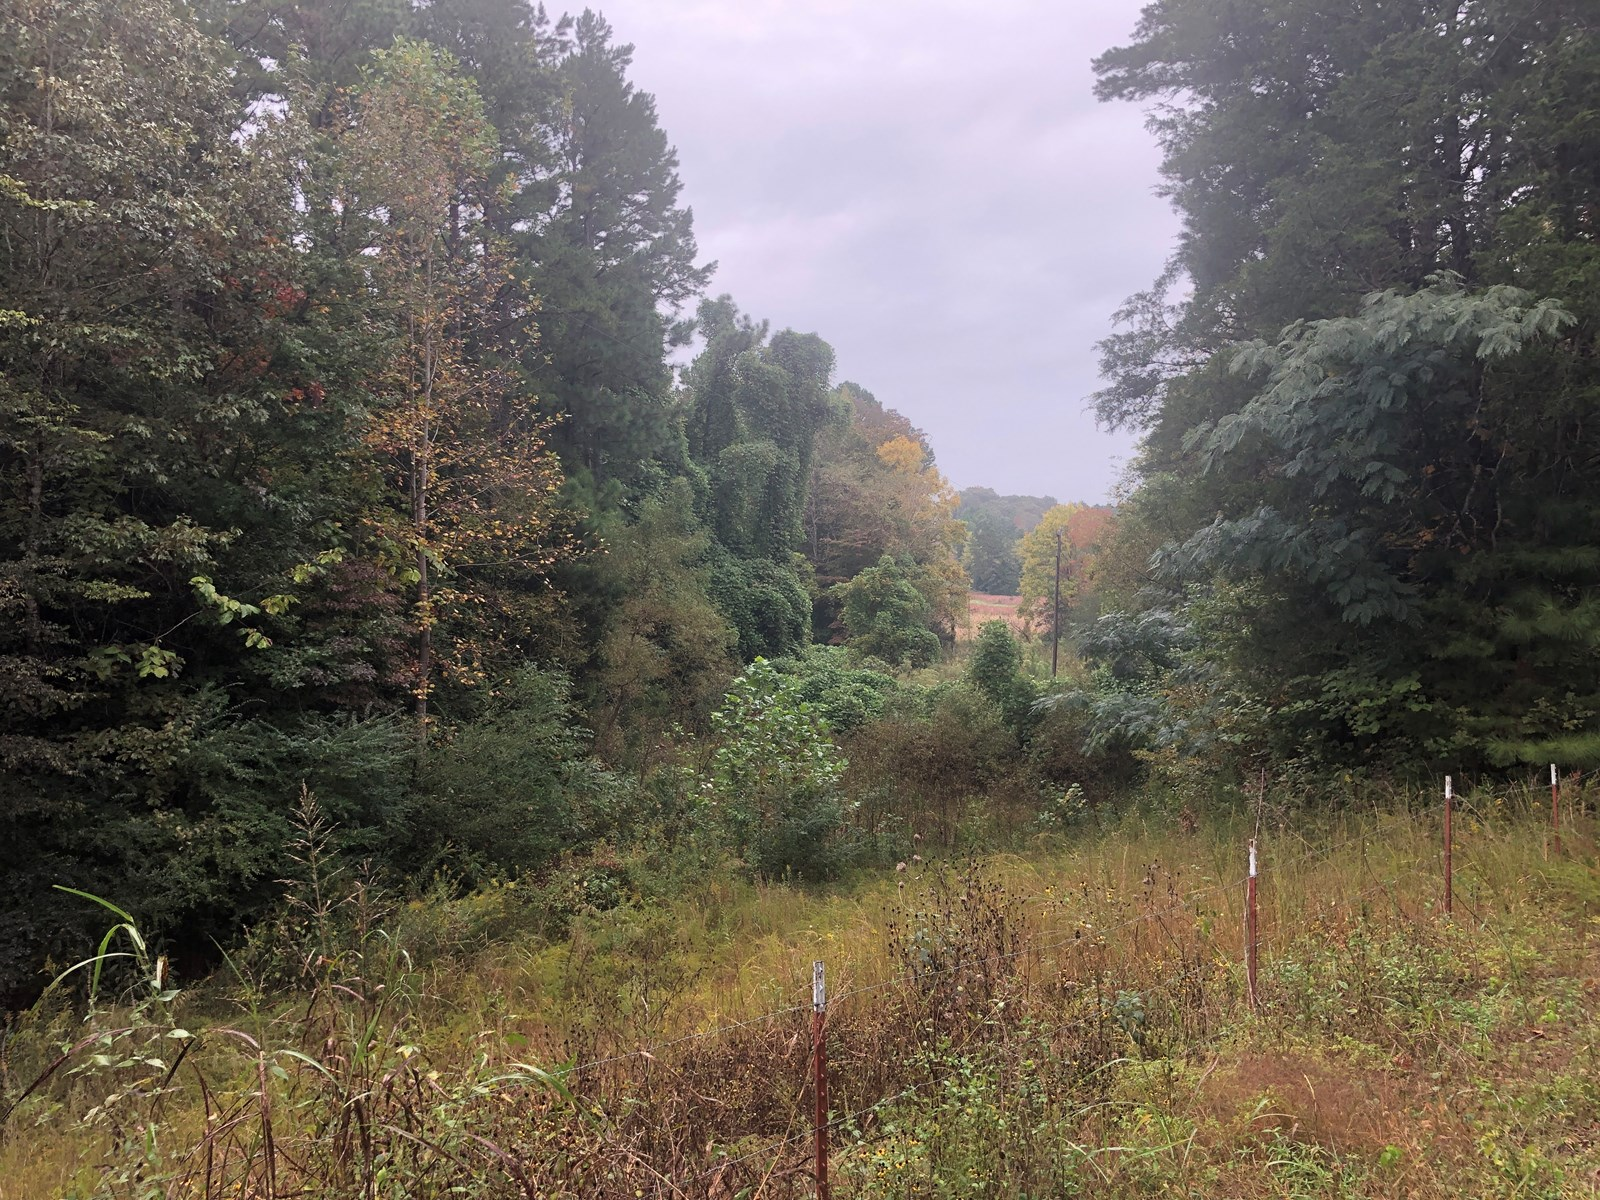 LAND IN TN FOR SALE TO BUILD A HOME ON – HARDIN COUNTY TN